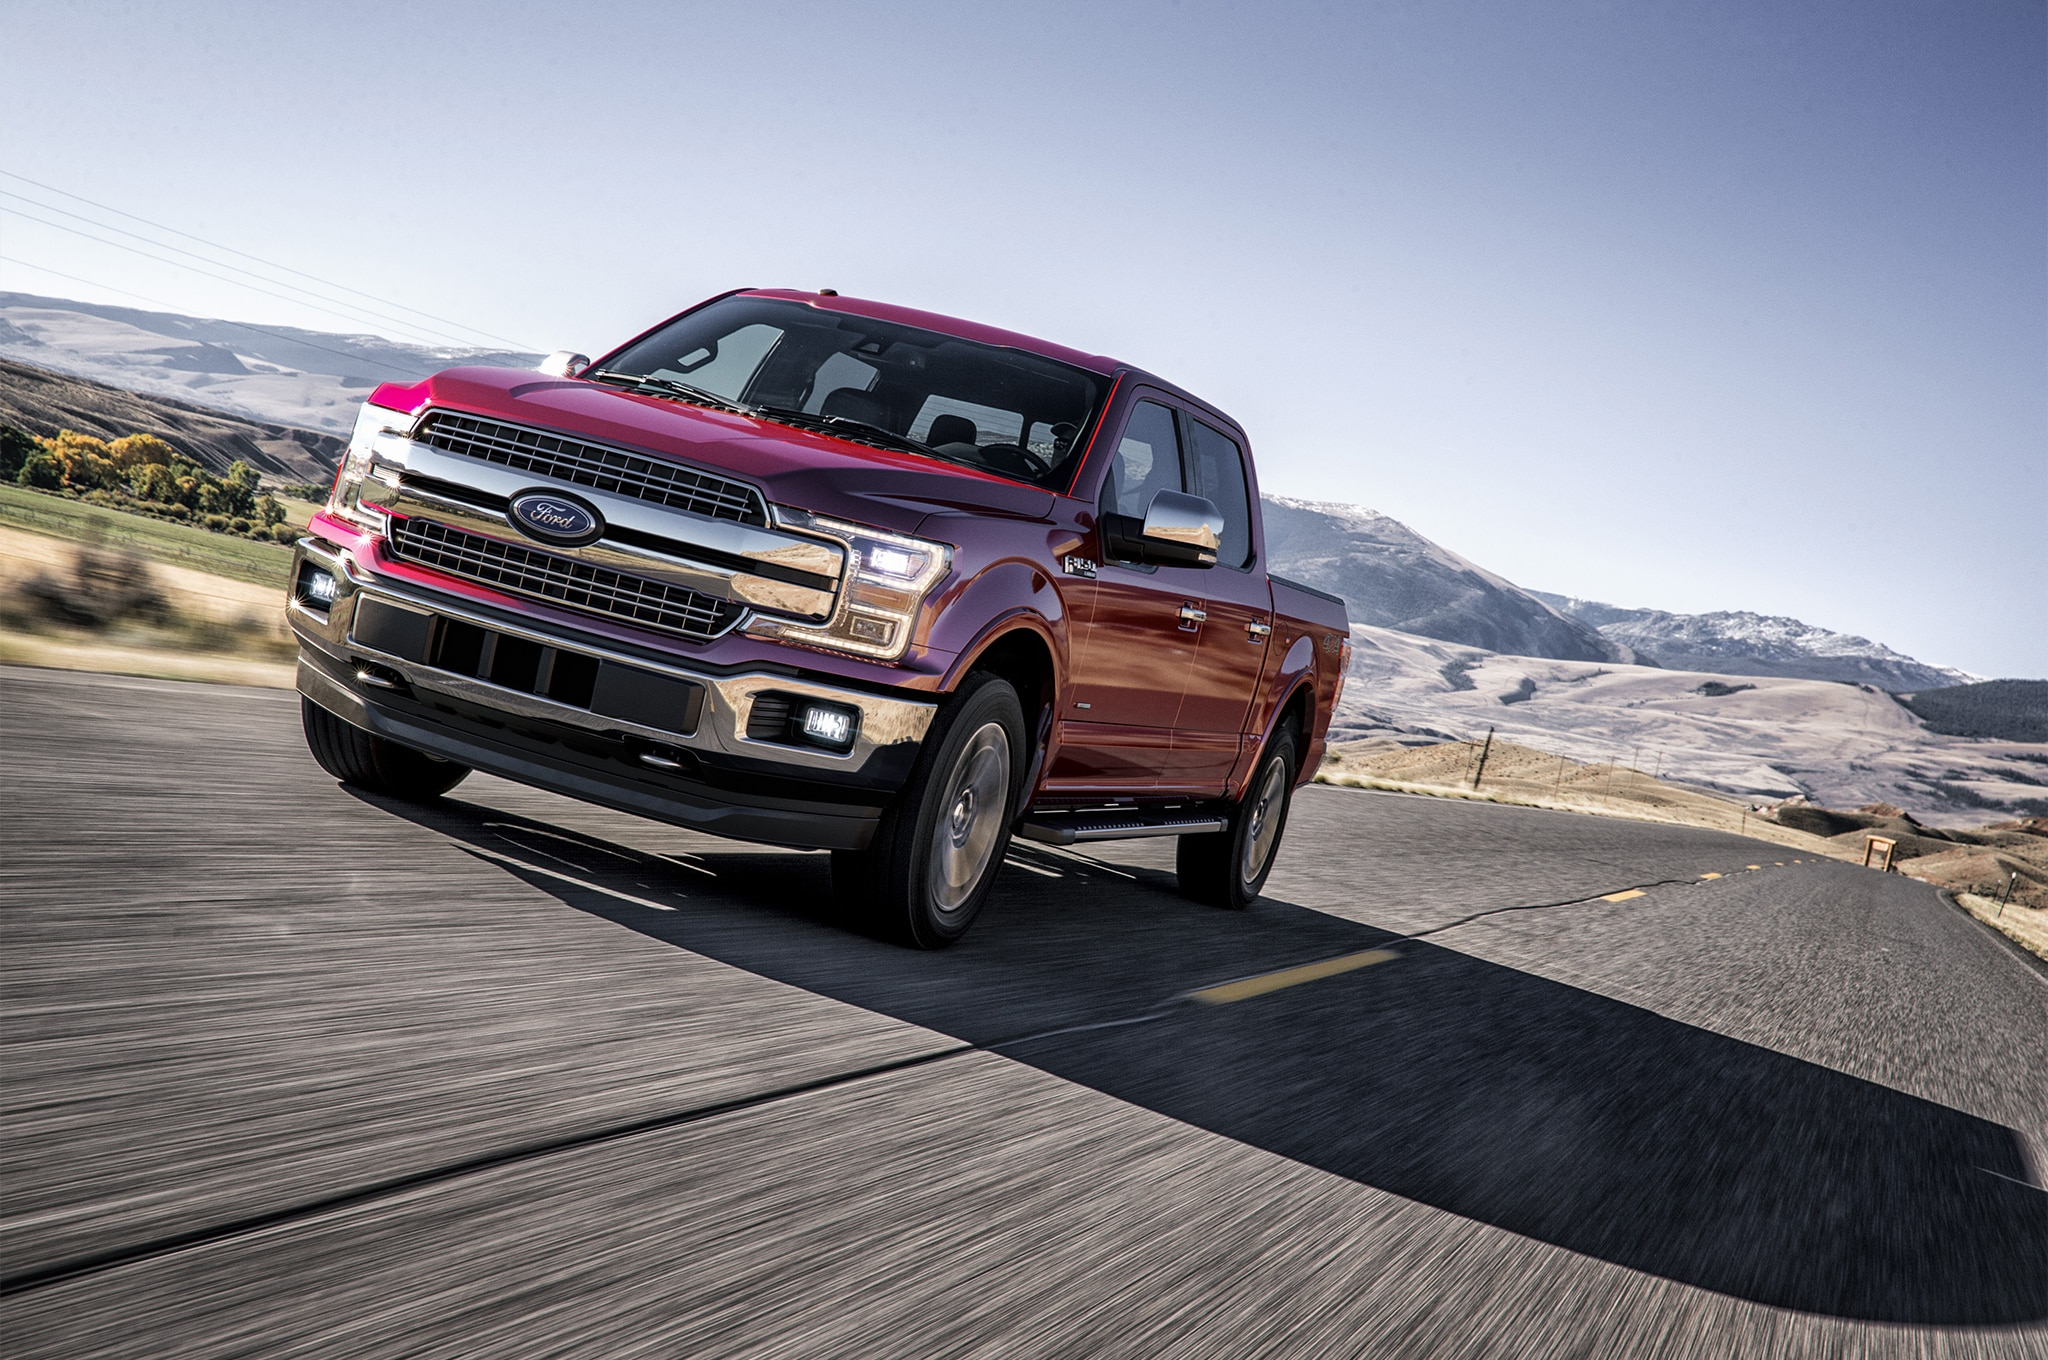 New   Liter Twin Turbo V  Ford F  Expedition Makes  Horsepower